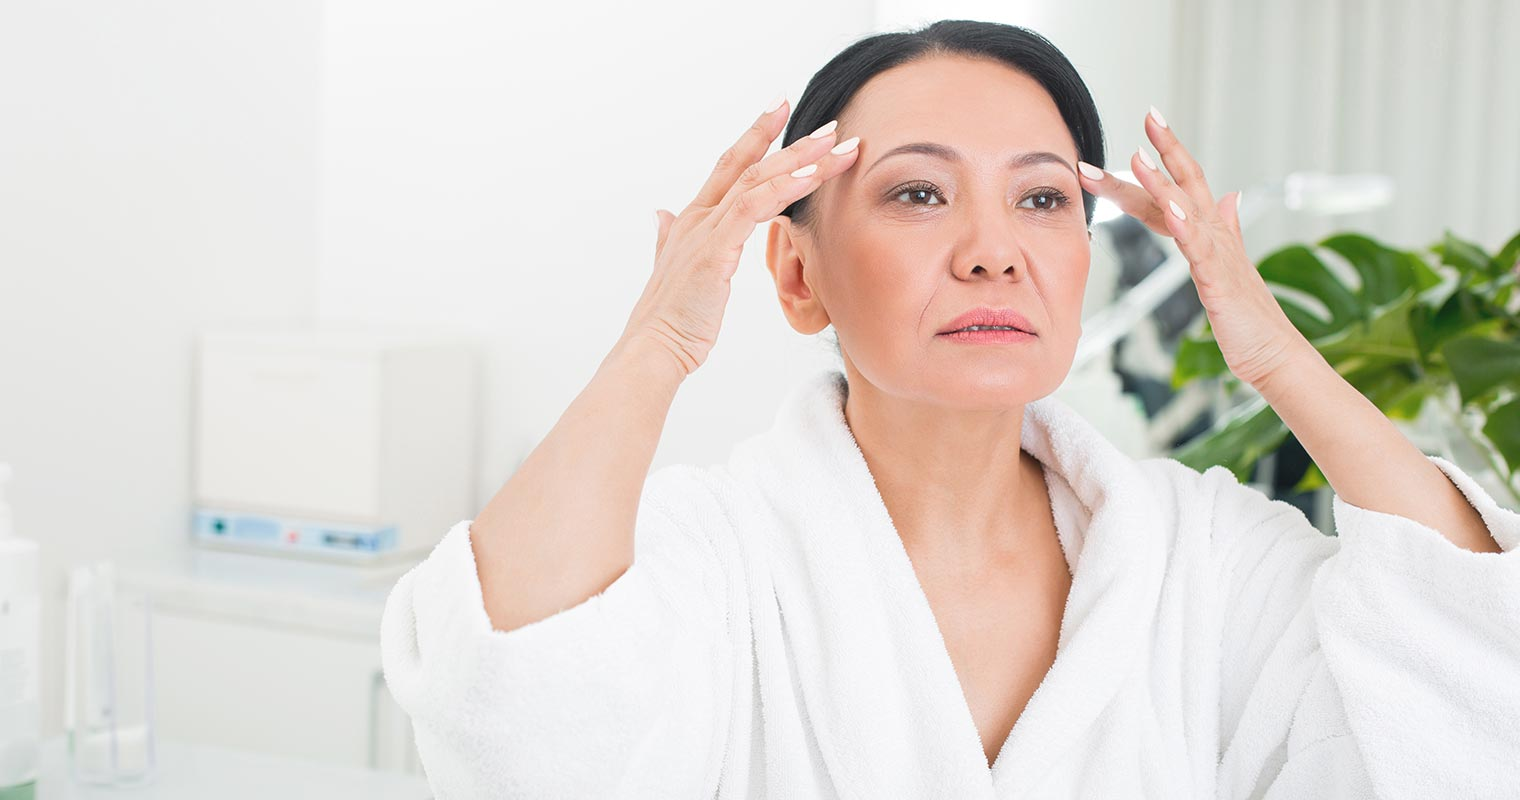 Preventing wrinkles in old age